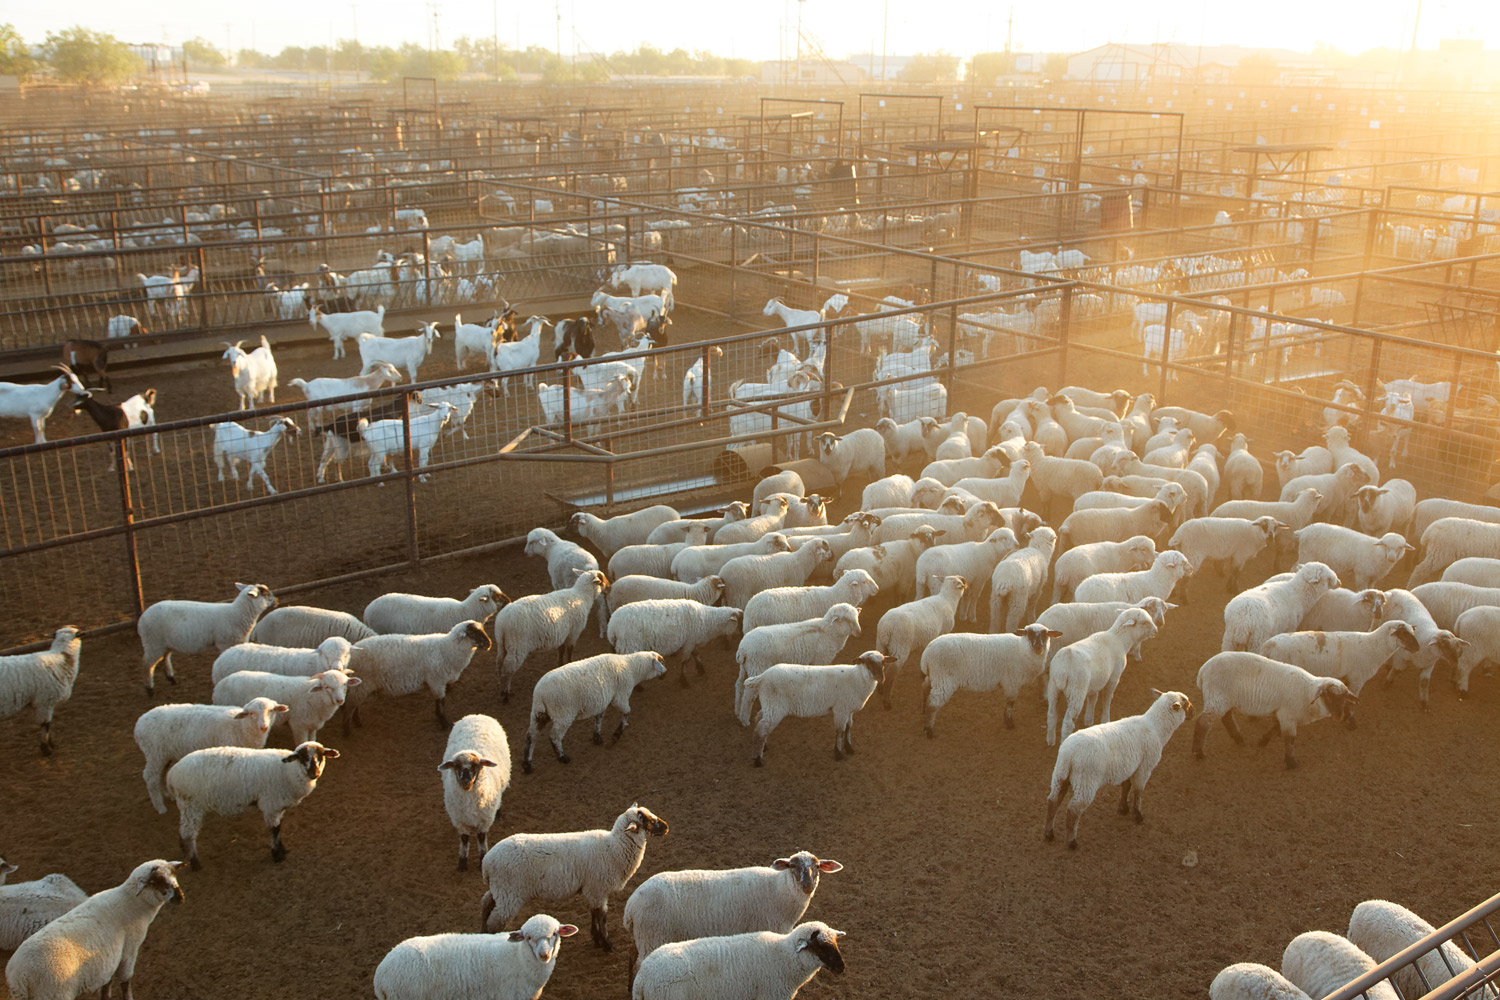 The lack of rain has made it difficult for ranchers to water their livestock, and ruined much of the region's pasturelands, forcing ranchers to sell their animals earlier than planned. These sheep and goats are heading for auction in San Angelo, Texas.